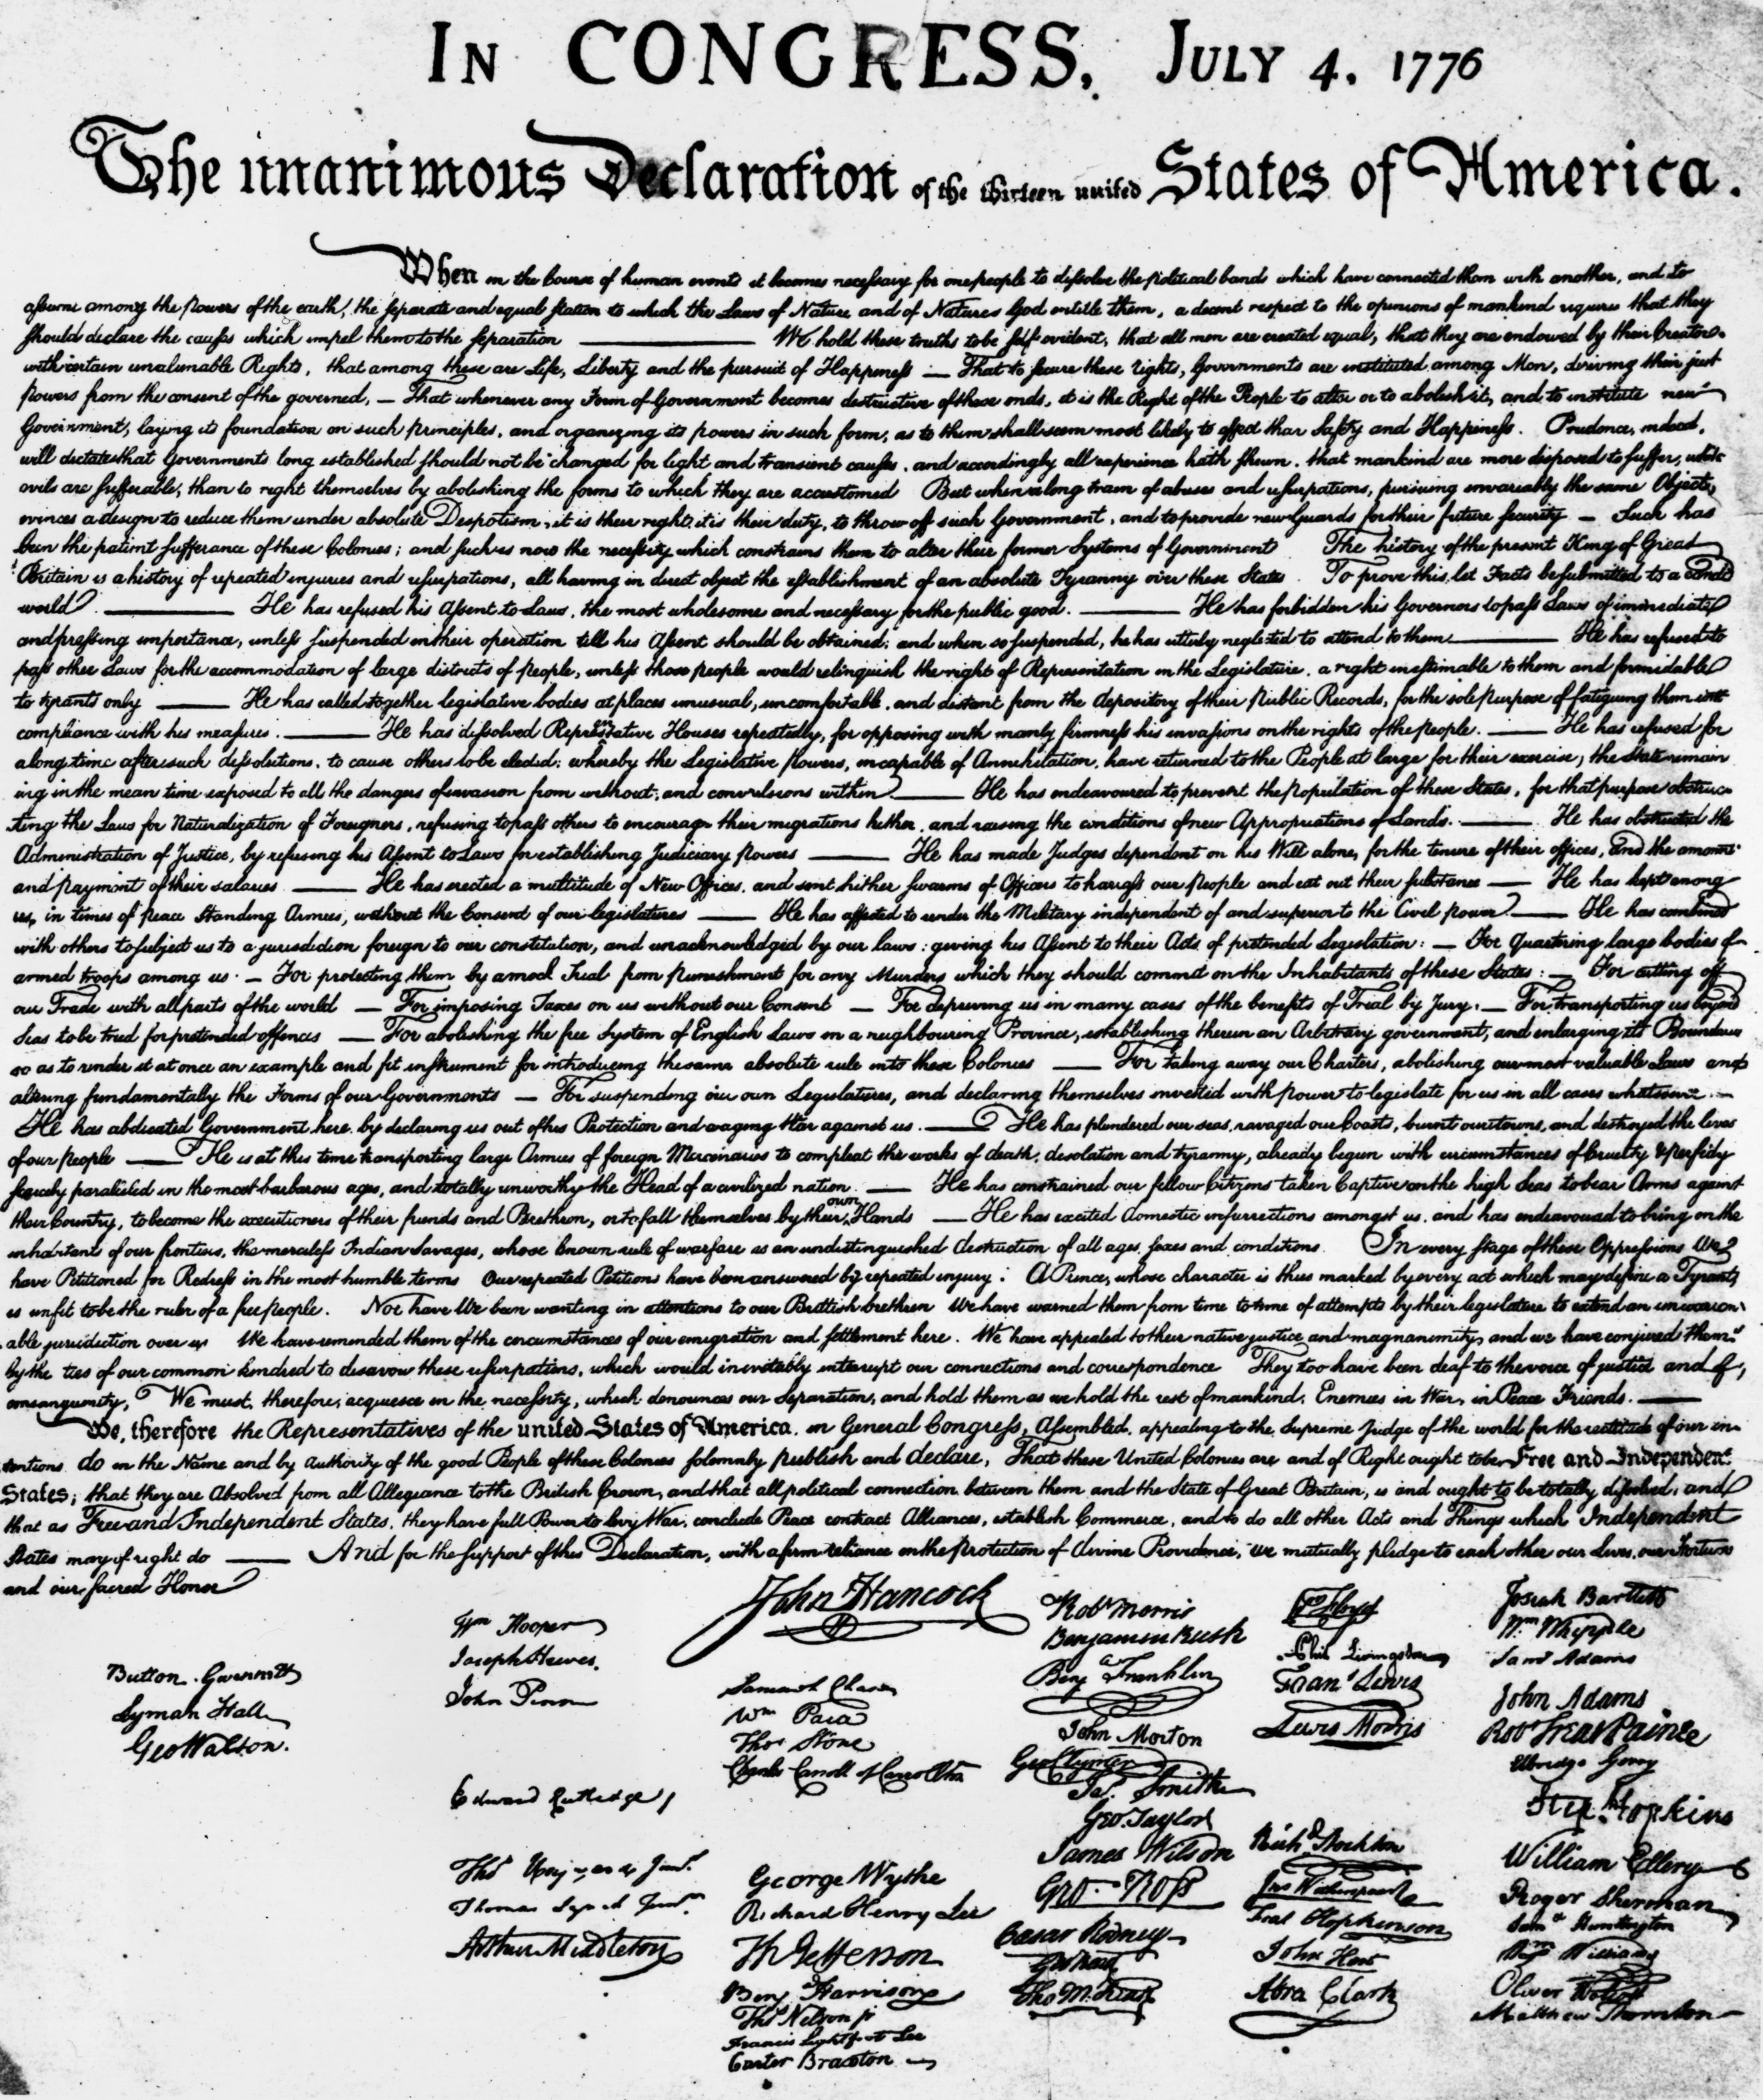 the signatures on the Declaration of Independence